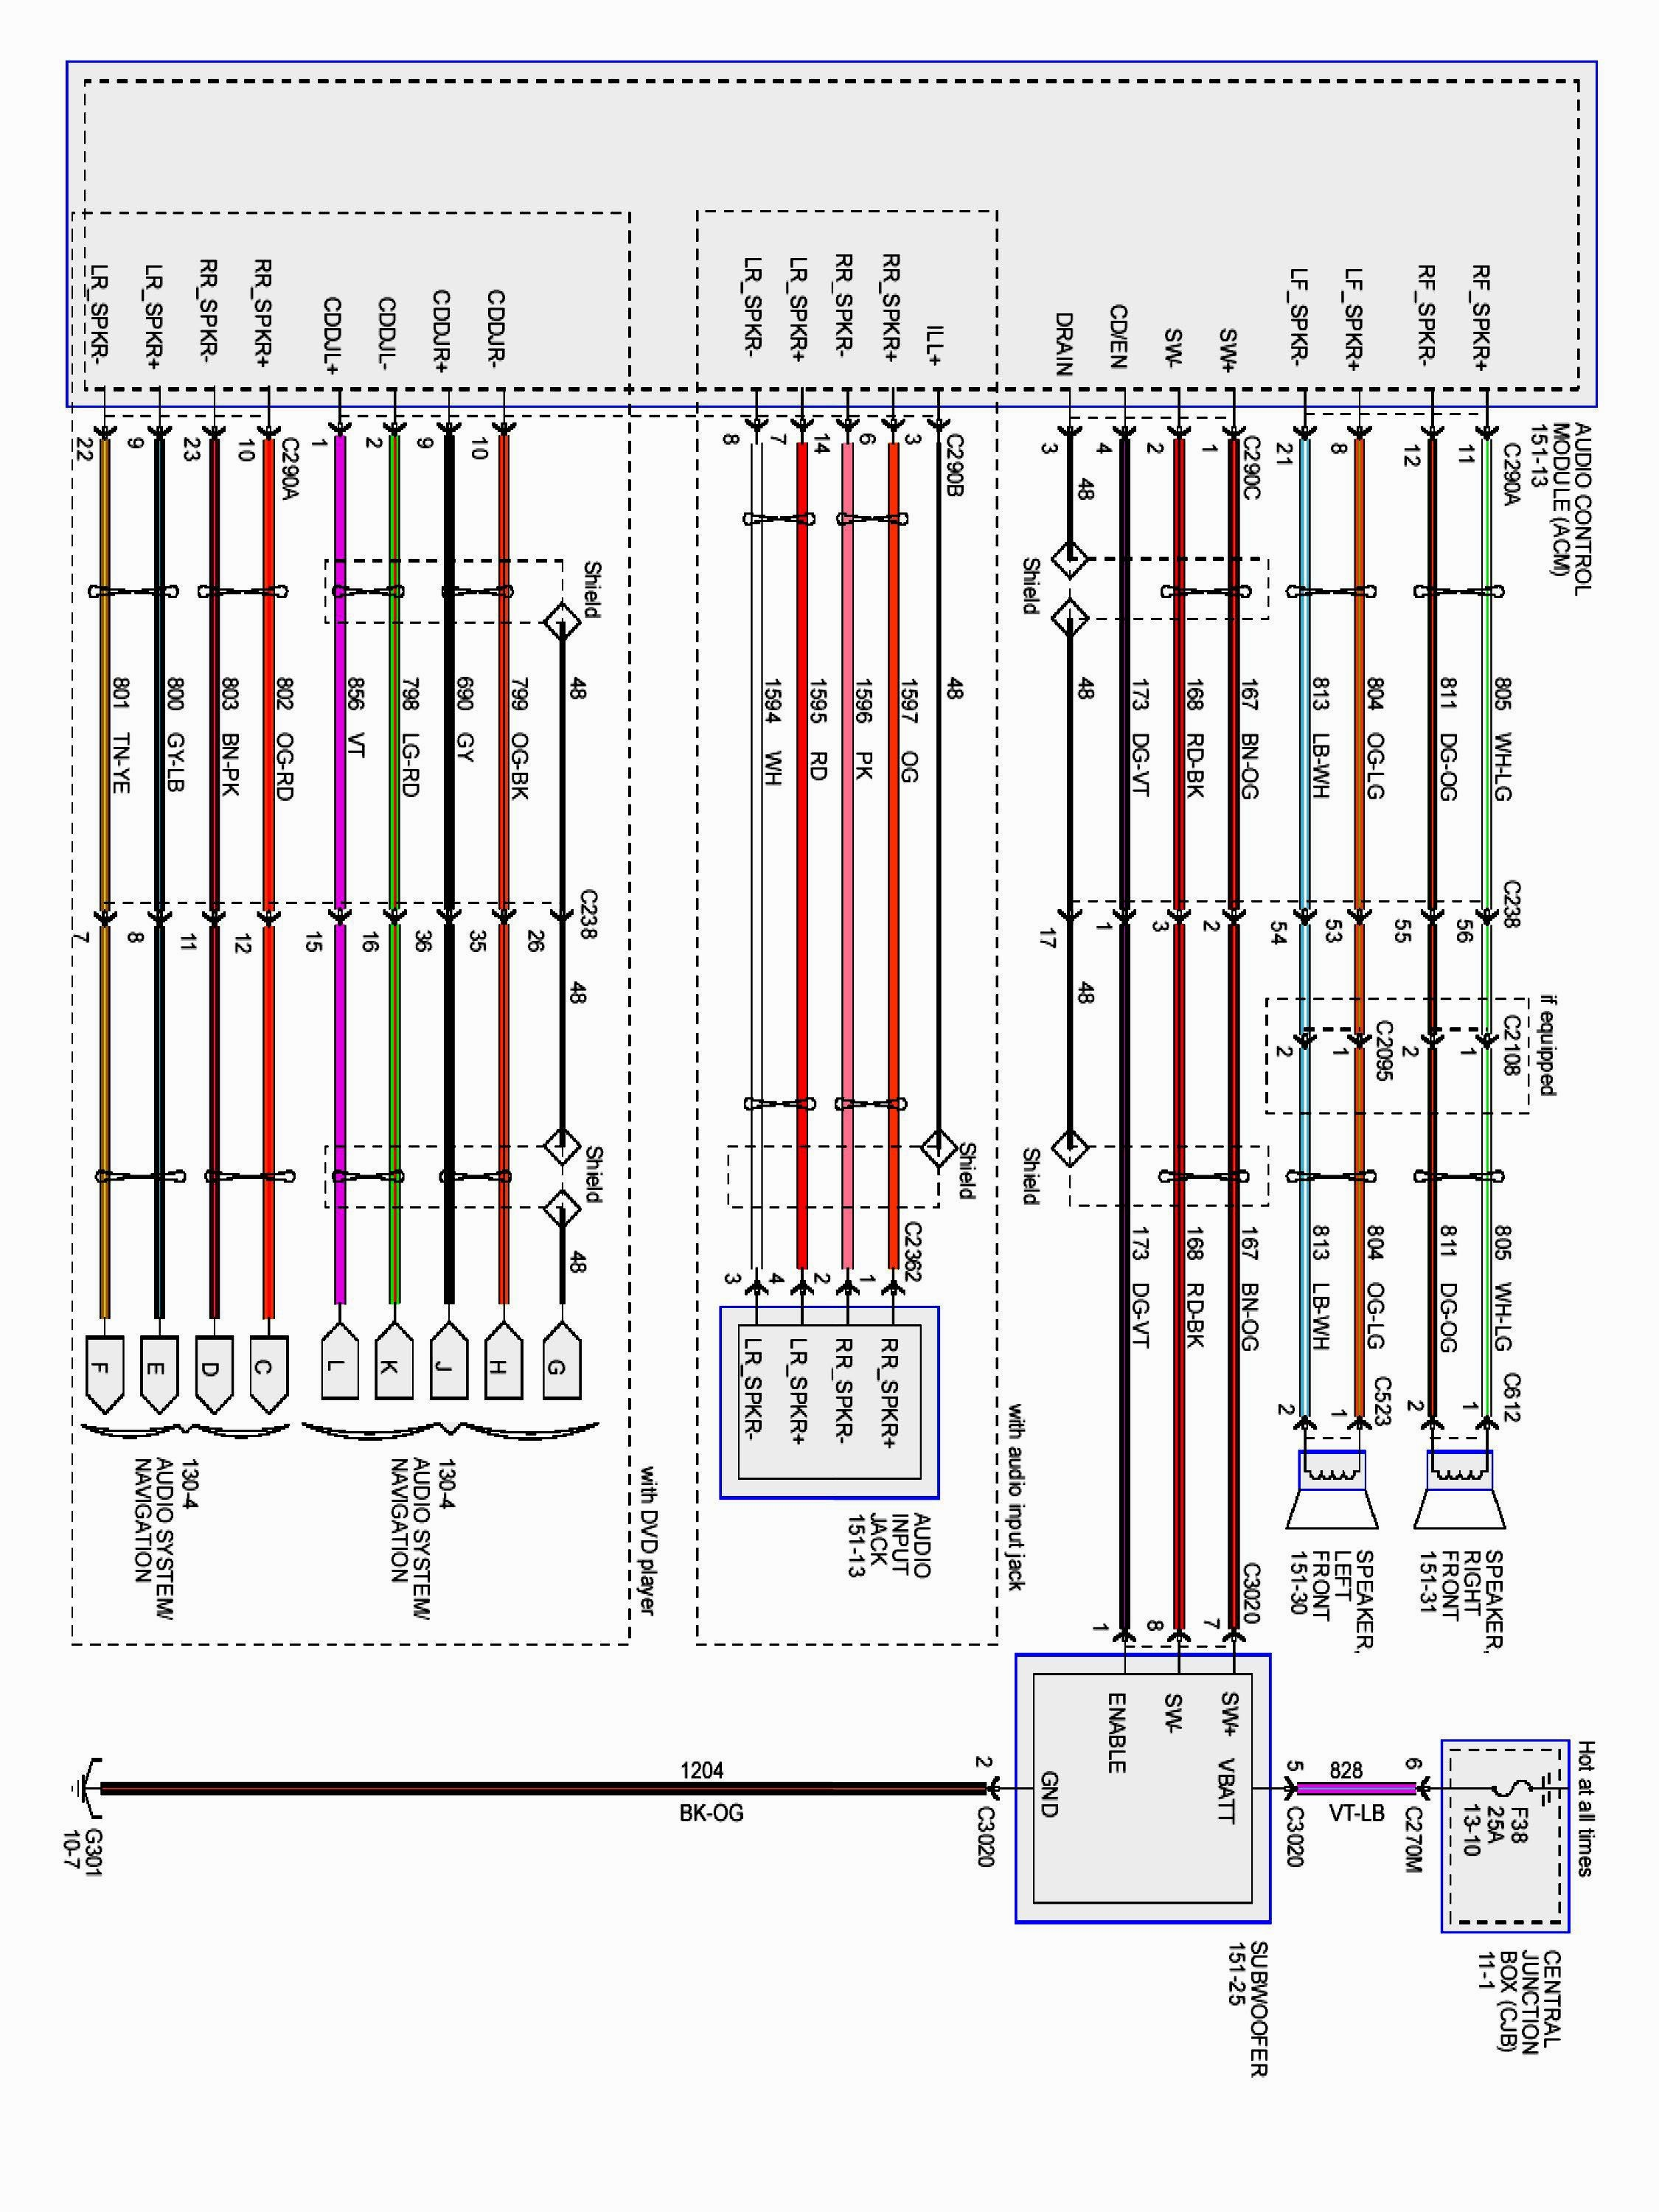 2006 Pontiac G6 Wiring Diagram from mainetreasurechest.com